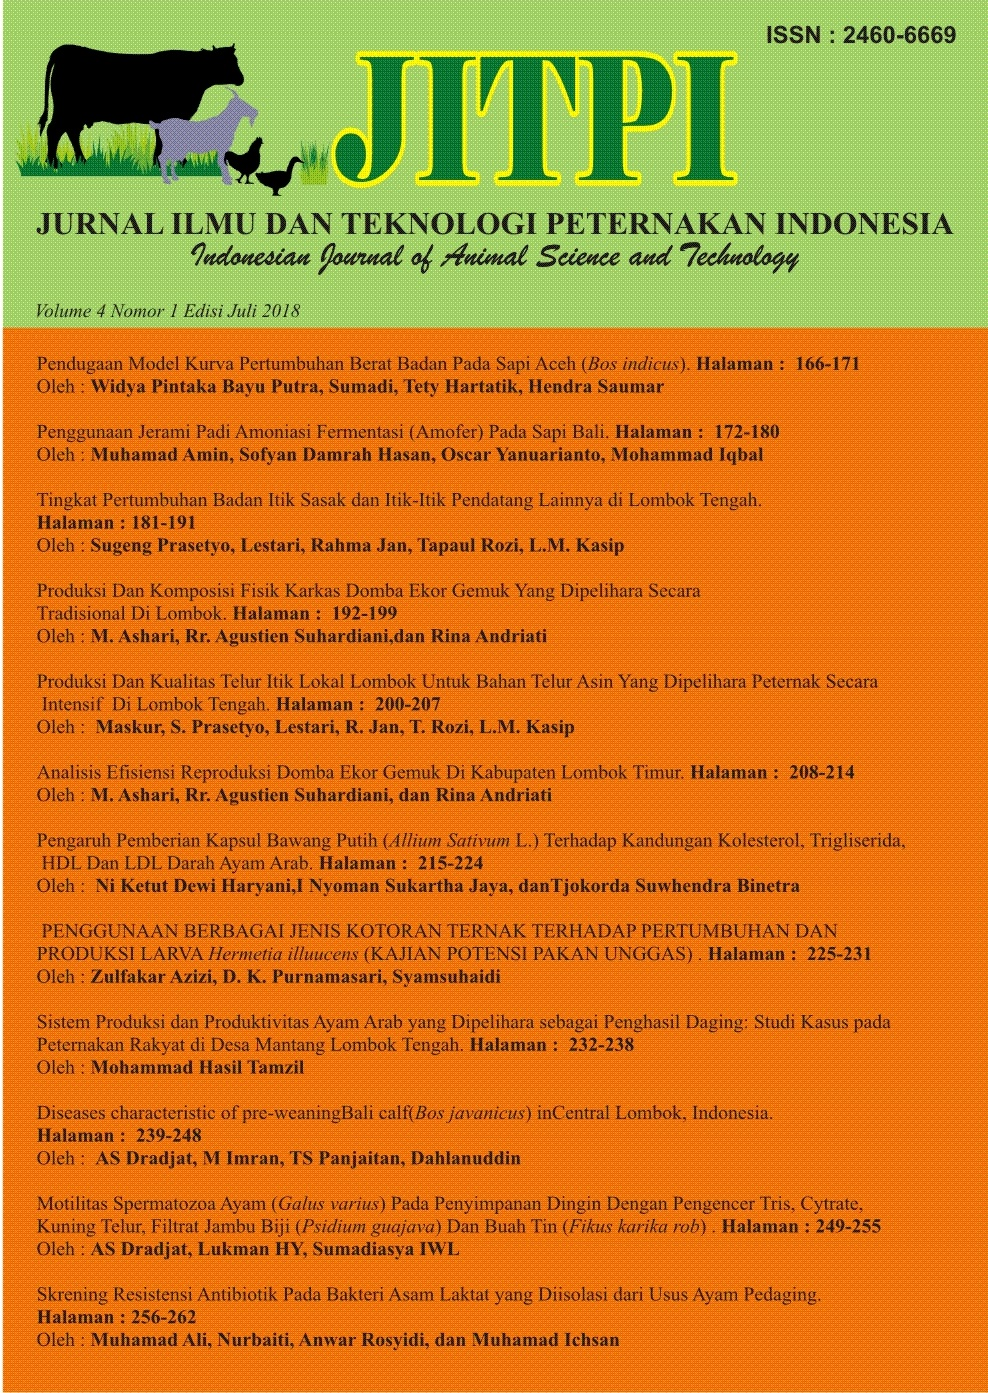 JURNAL ILMU DAN TEKNOLOGI PETERNAKAN INDONESIA Vol 3 2018/ Indonesian Journal of Animal Science and Technology Vol 3 2018